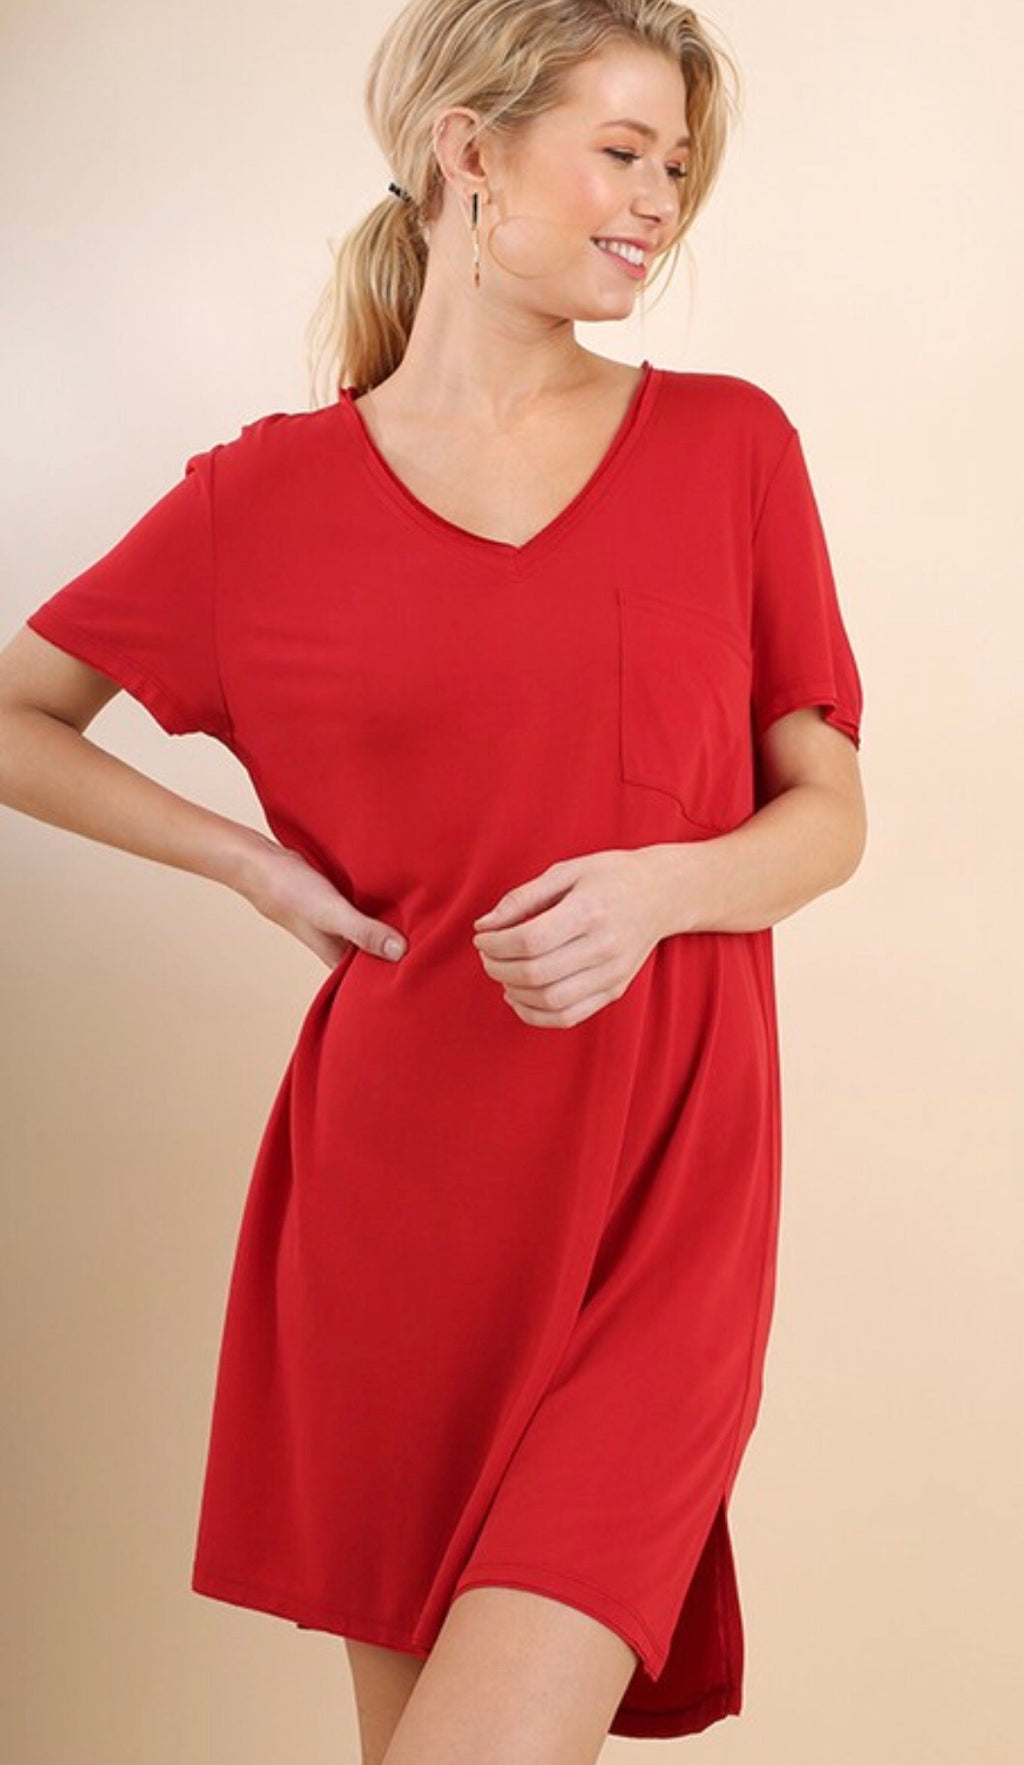 Red V-Neck T-Shirt Dress